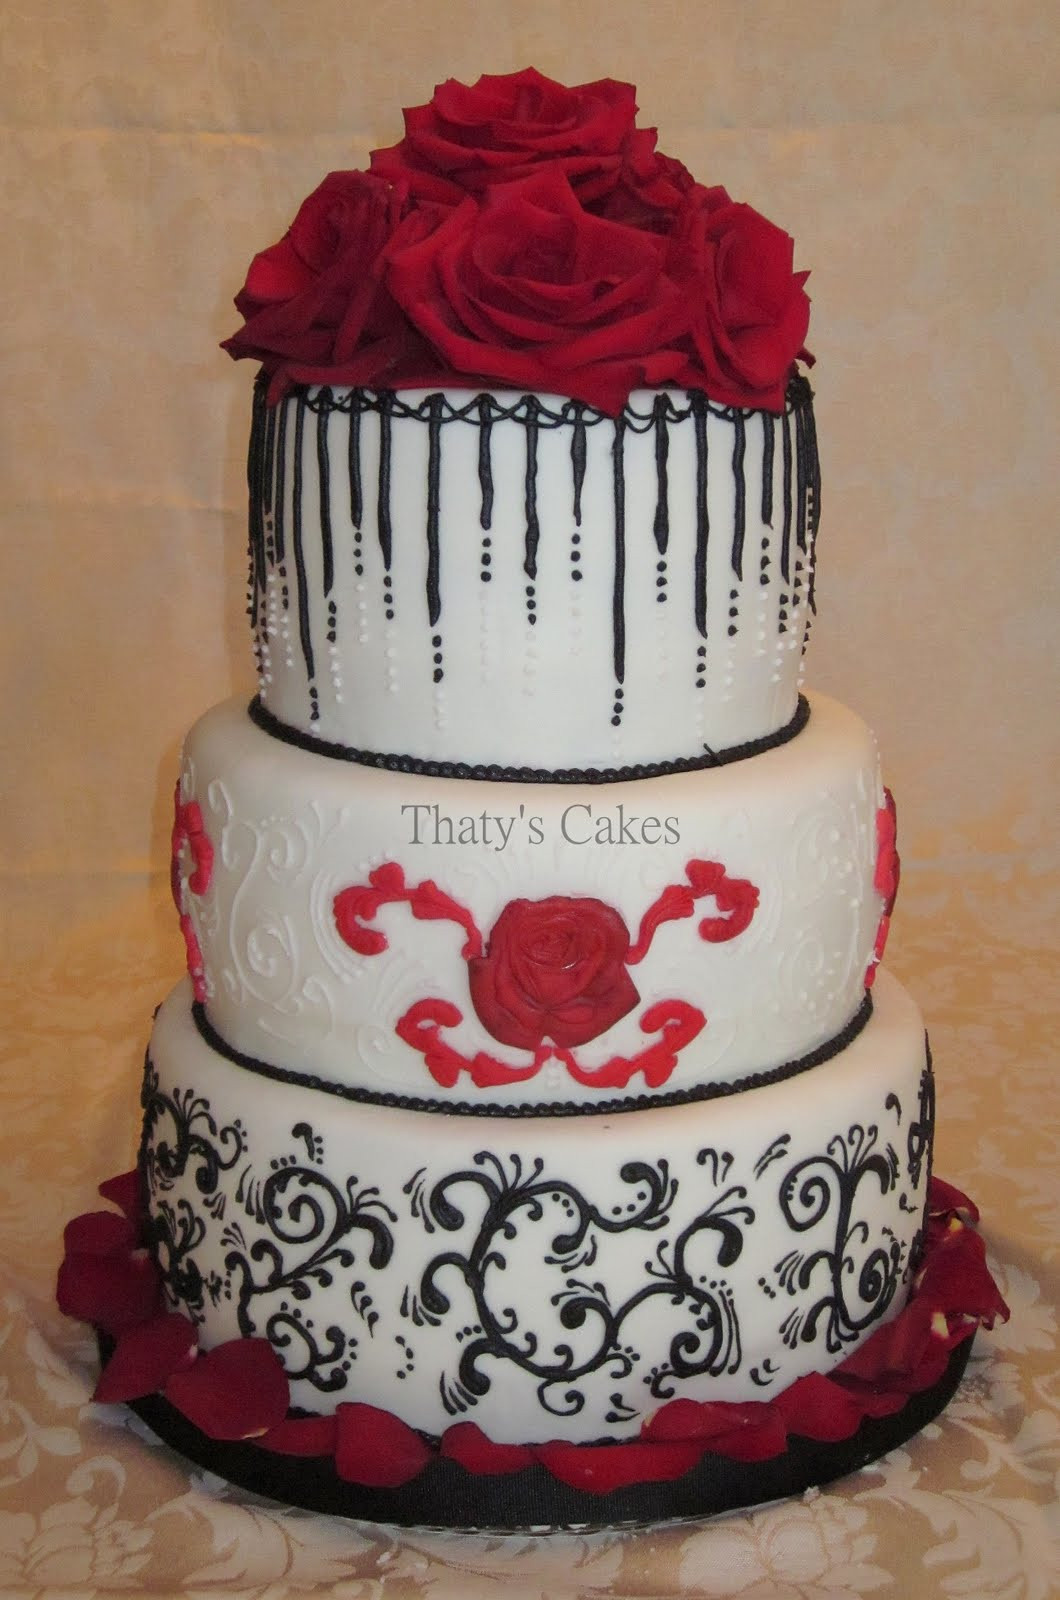 Mail Order Wedding Cakes  Thaty s Cakes Wedding and Birthday Cakes